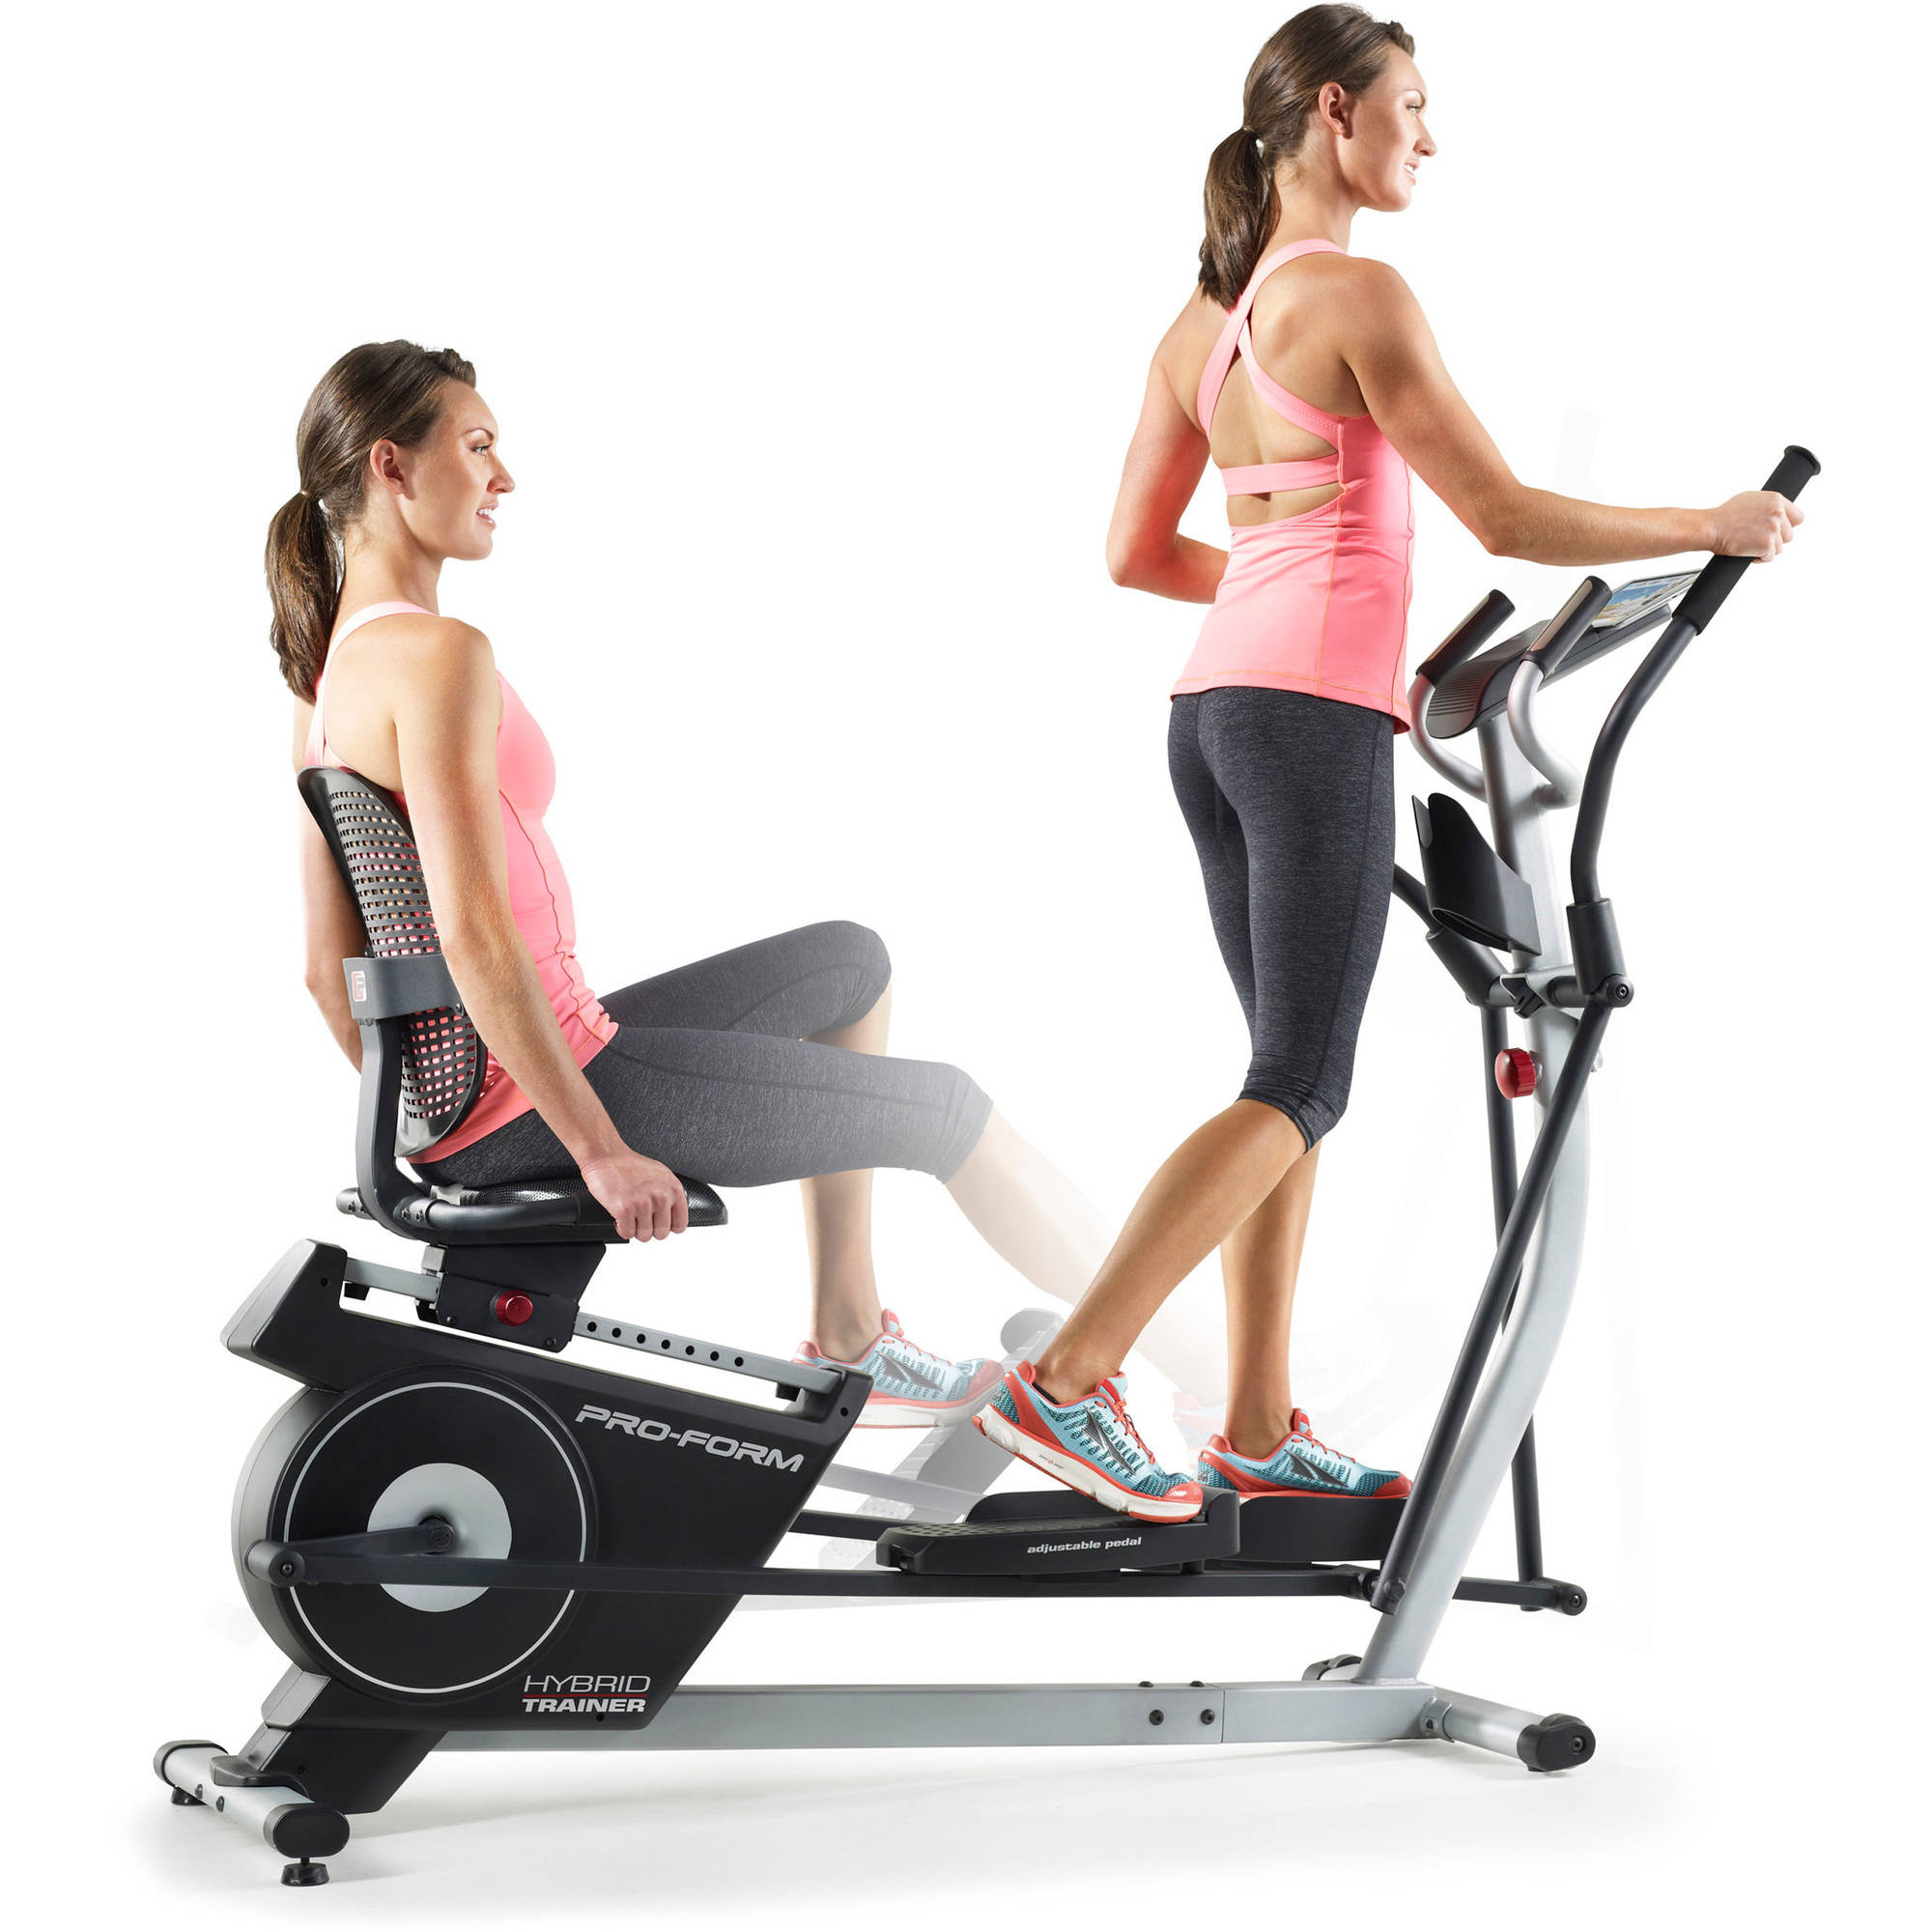 high intensity interval training cardio